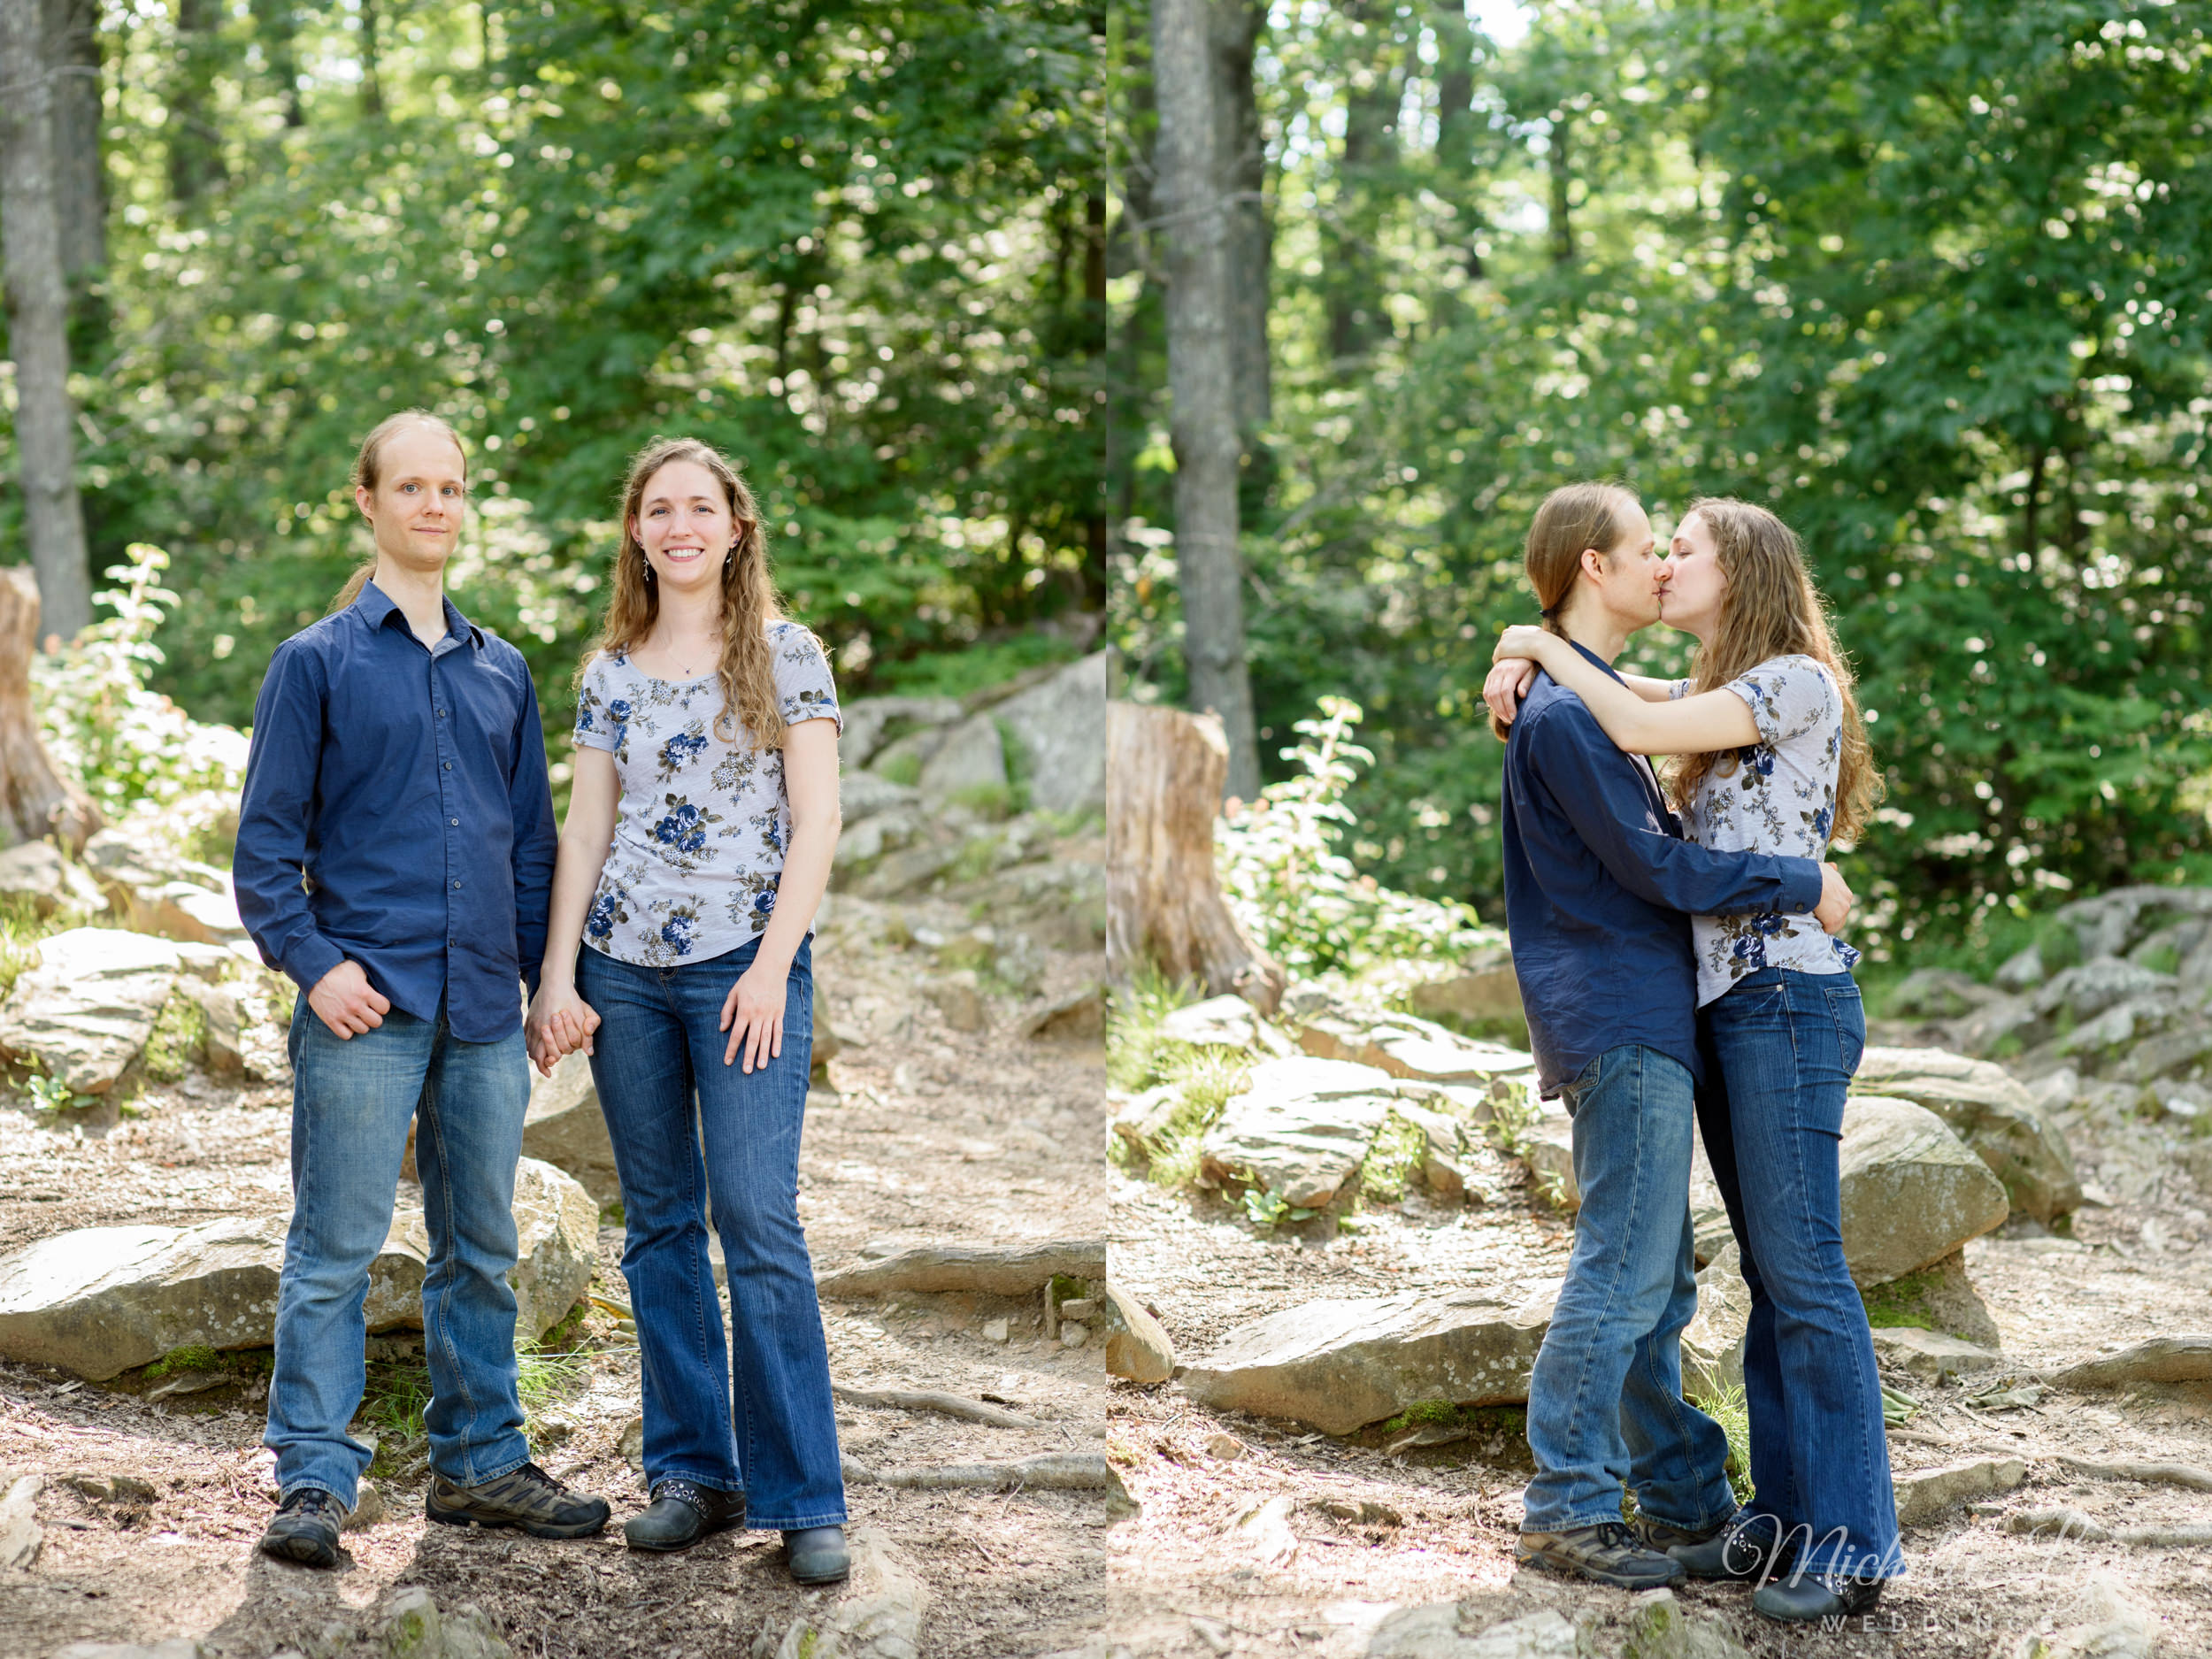 mlw-rocks-state-park-maryland-engagement-photos-4.jpg